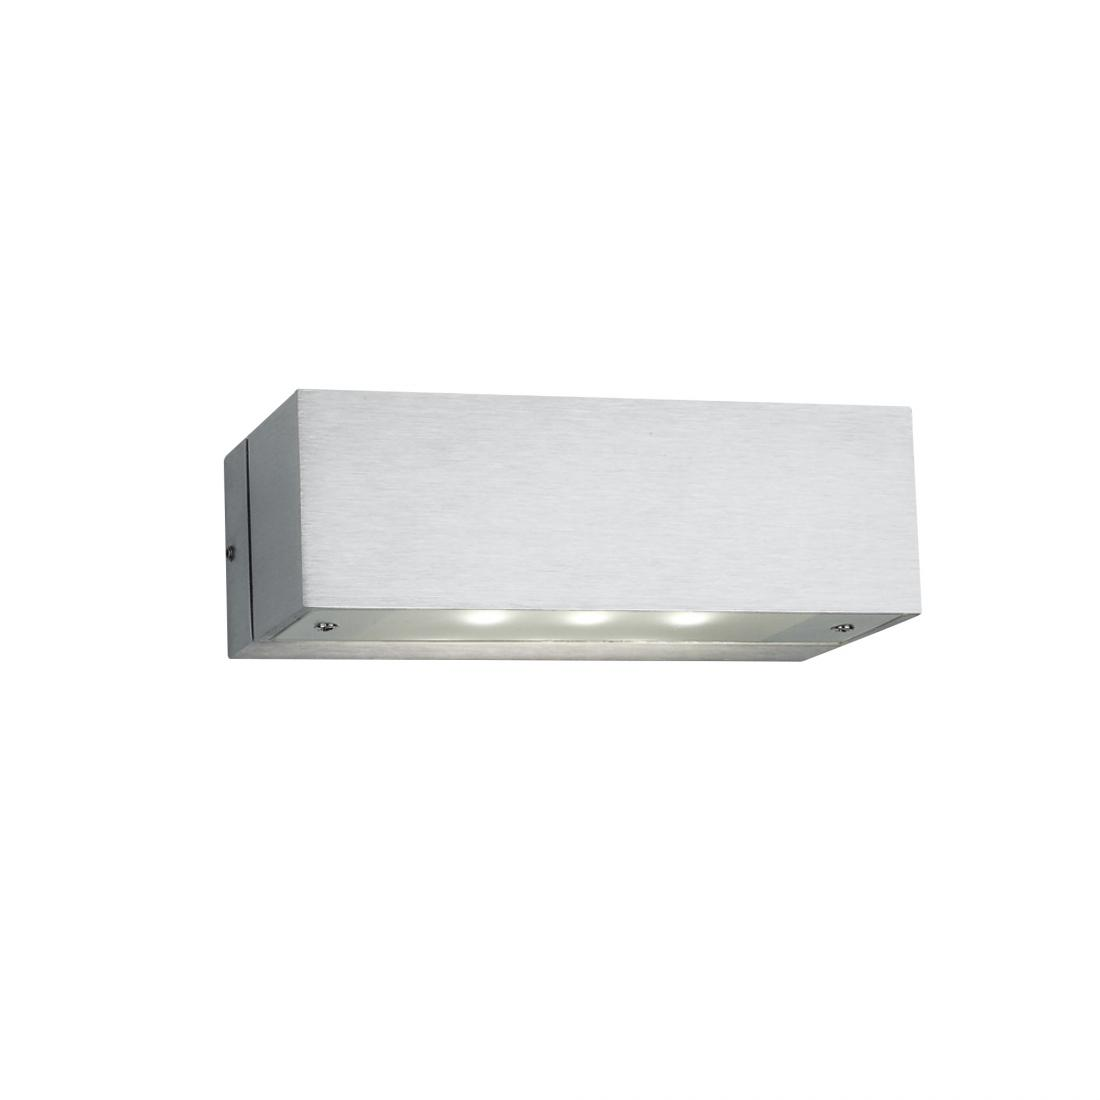 High quality IP20 Wall Lighting Up and Down LED Wall Light